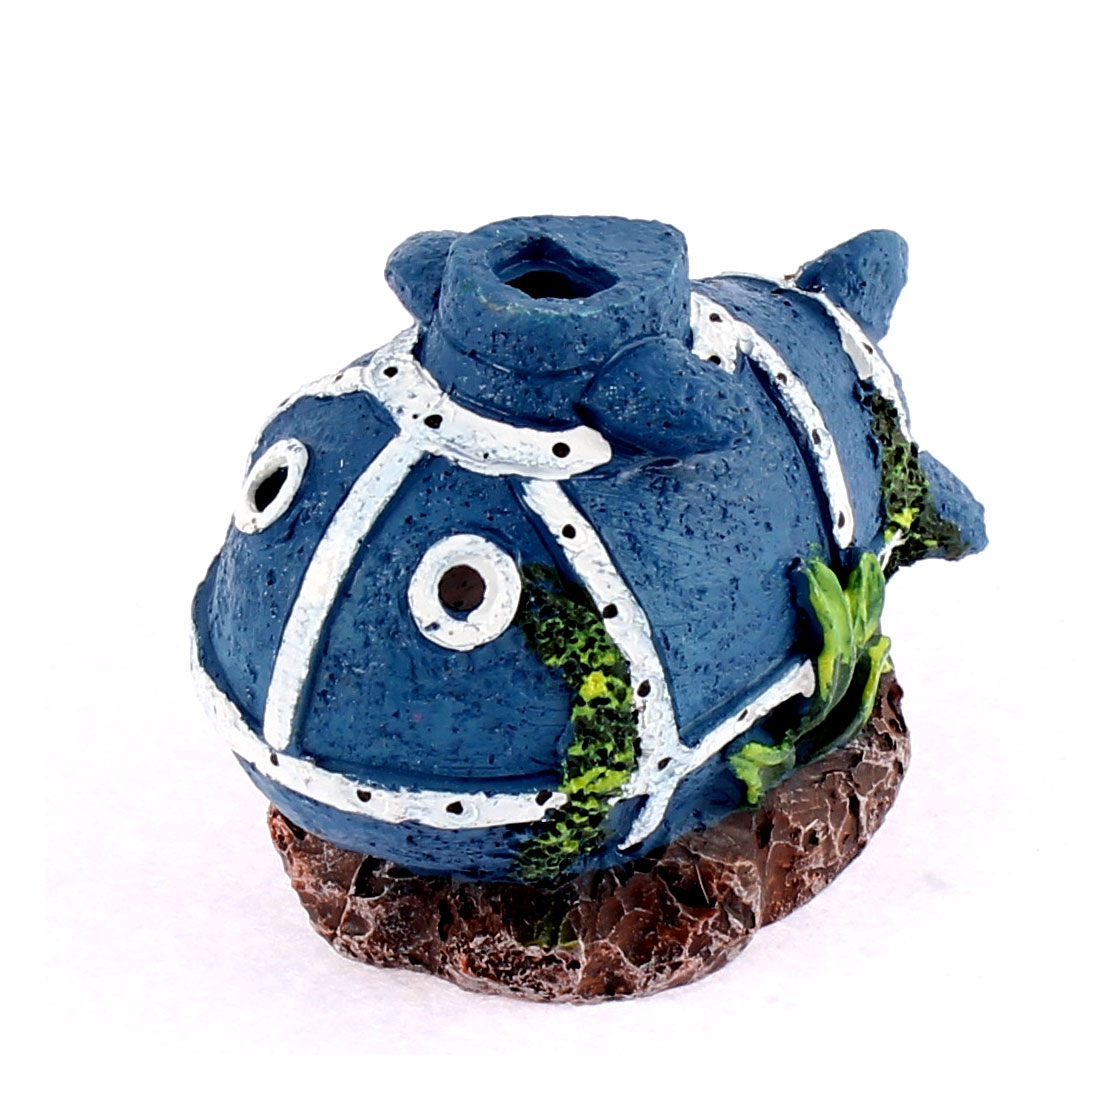 Aquarium Artificial Fish Shaped Bubble Stone Decor